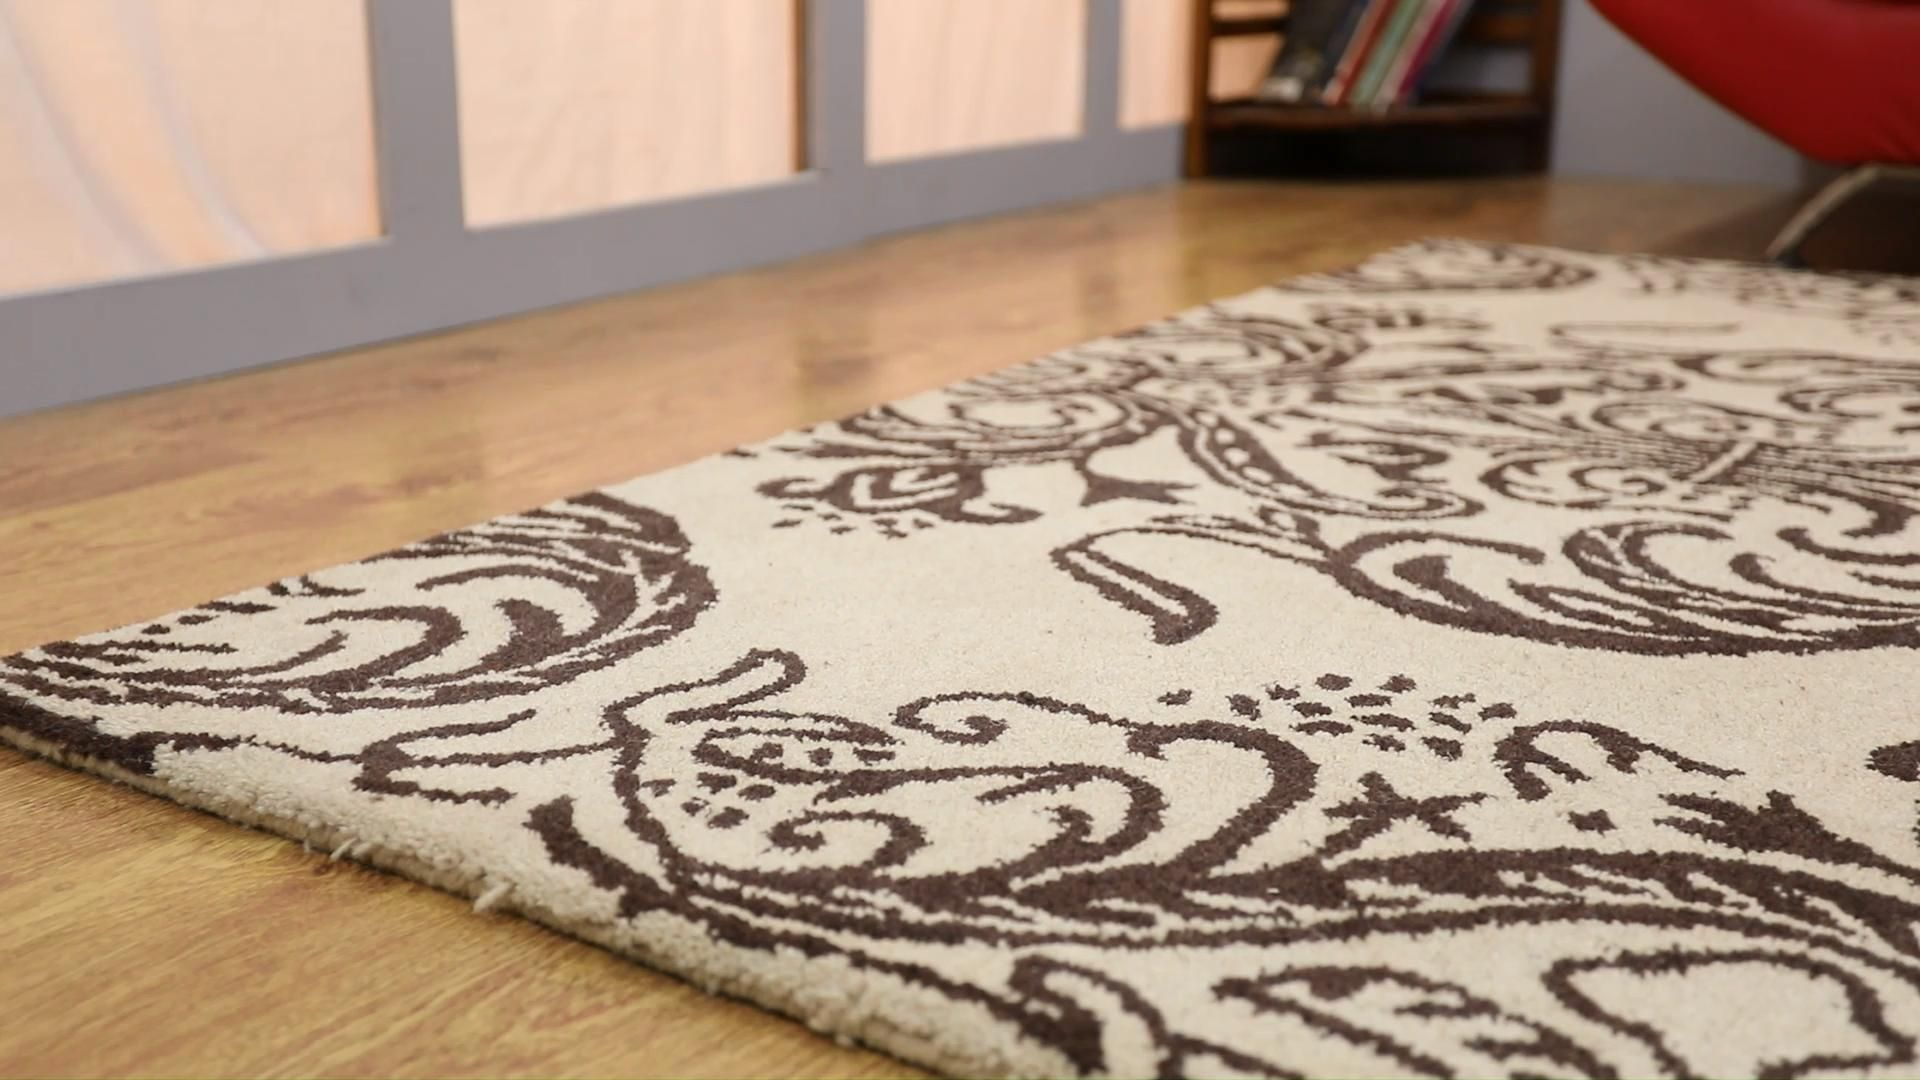 Do you aspire to embellish your home with the most beautiful decorative piece? Try this resplendent woolen area rug on the flooring of your home and be ready to win oodles of compliments from the visitors. Its simple floral pattern, handmade weaving technique, soft woolen stuff, smooth texture, fine finishing, and high durability will mesmerize you. #arearug #AreaRugs #arearugcleaning #arearugsusa